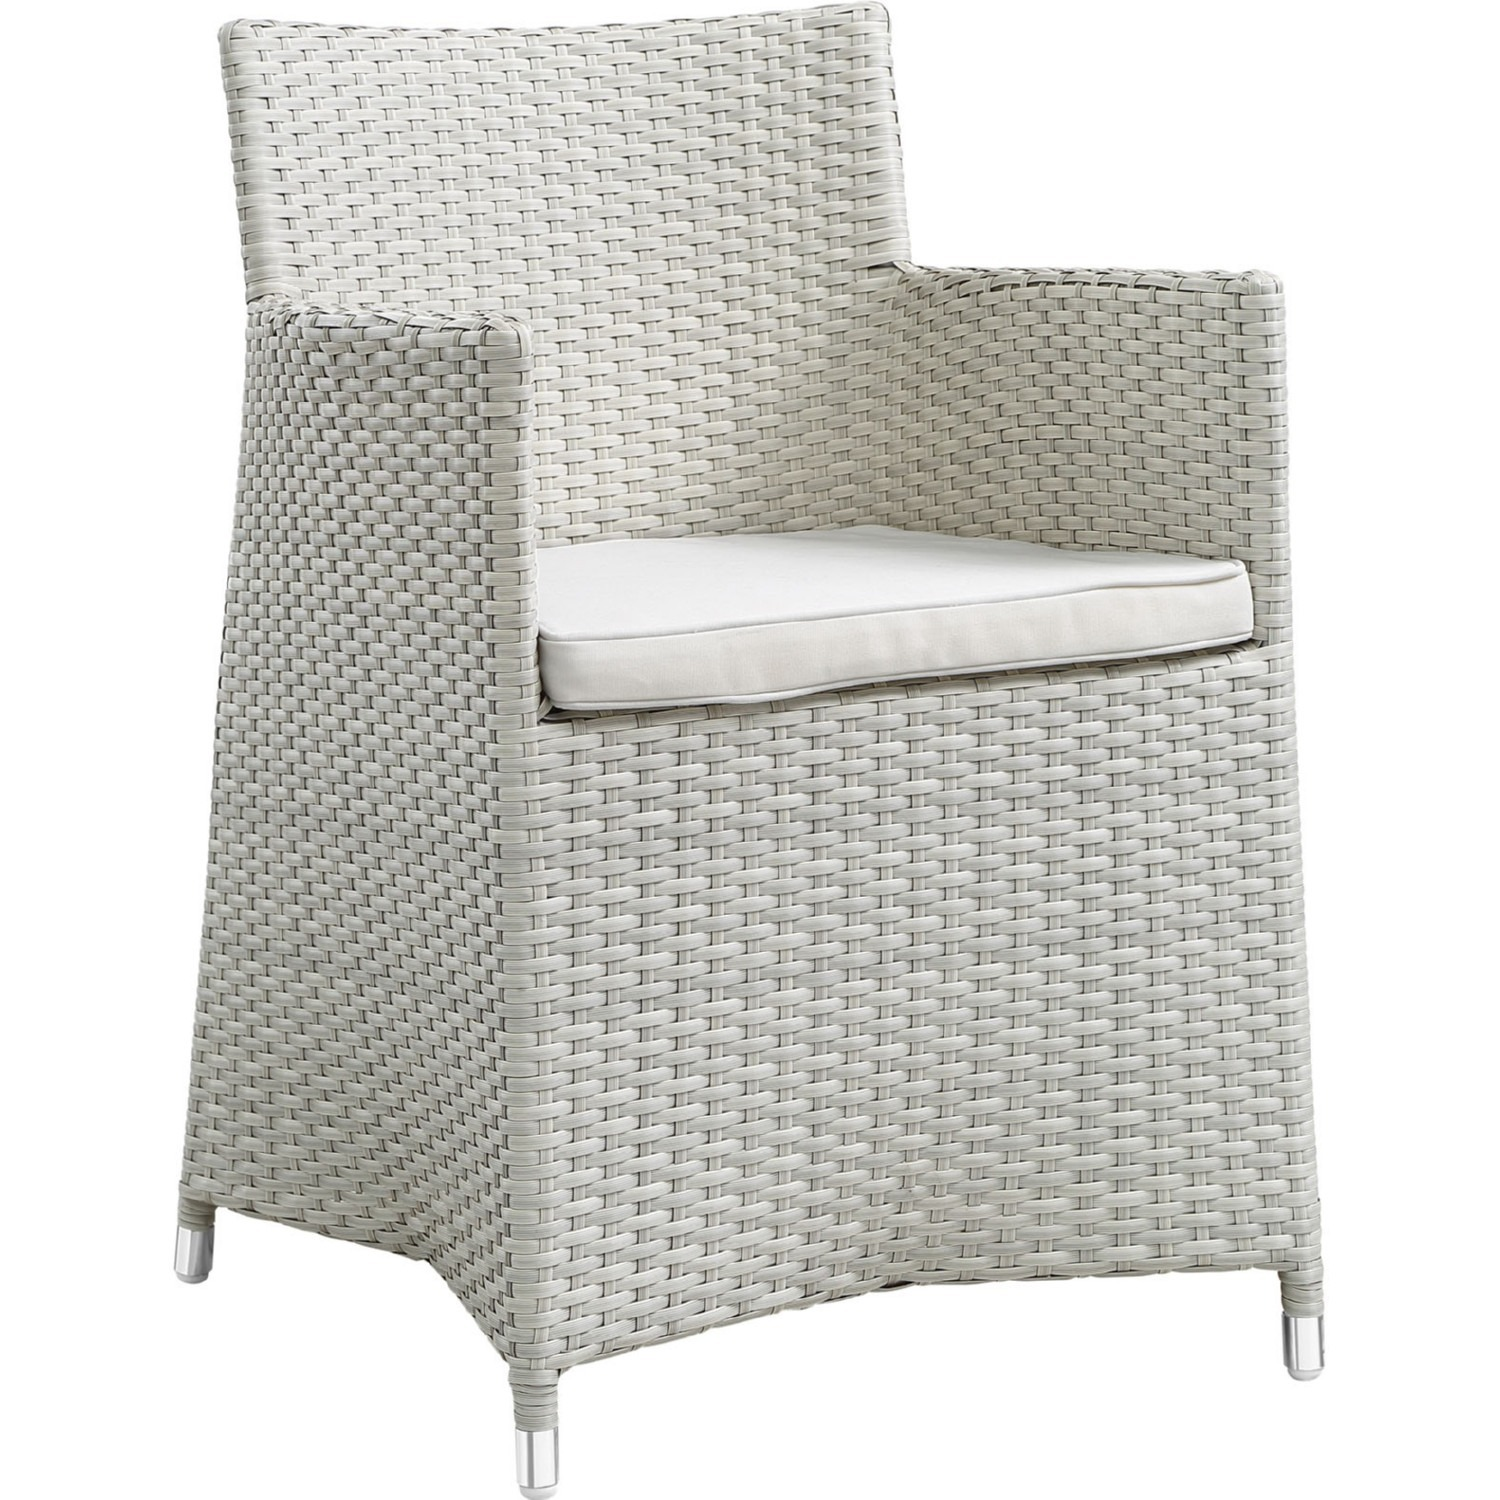 Modern 7-Piece Dining Set In Gray Rattan Weave - image-1